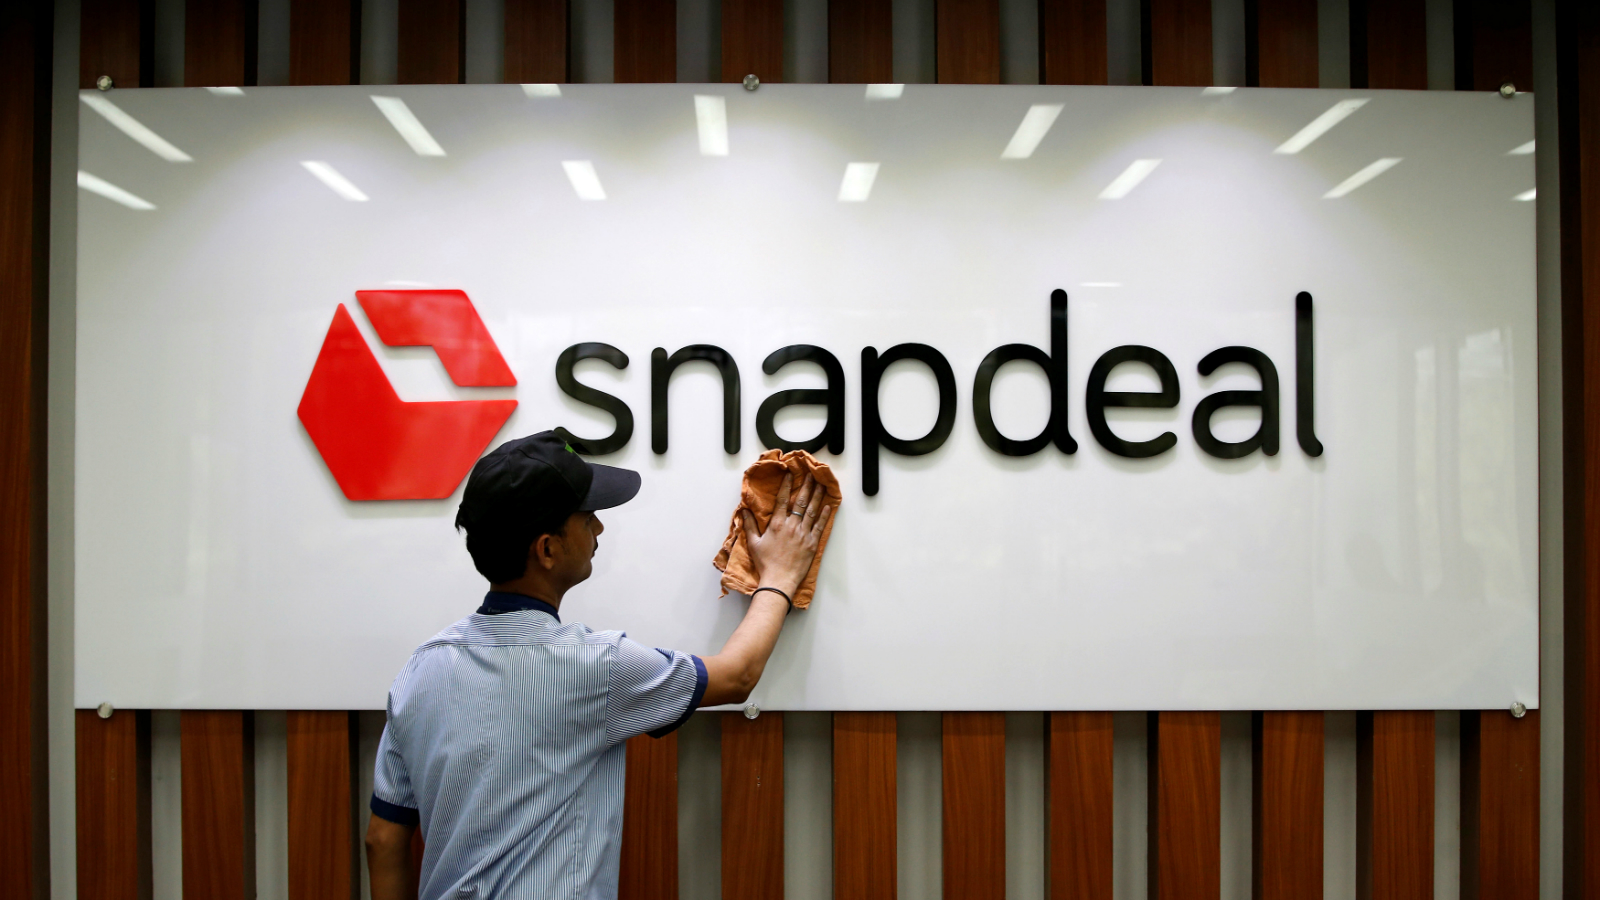 An employee cleans a Snapdeal logo at its headquarters in Gurugram on the outskirts of New Delhi, India, April 3, 2017. Picture taken April 3.